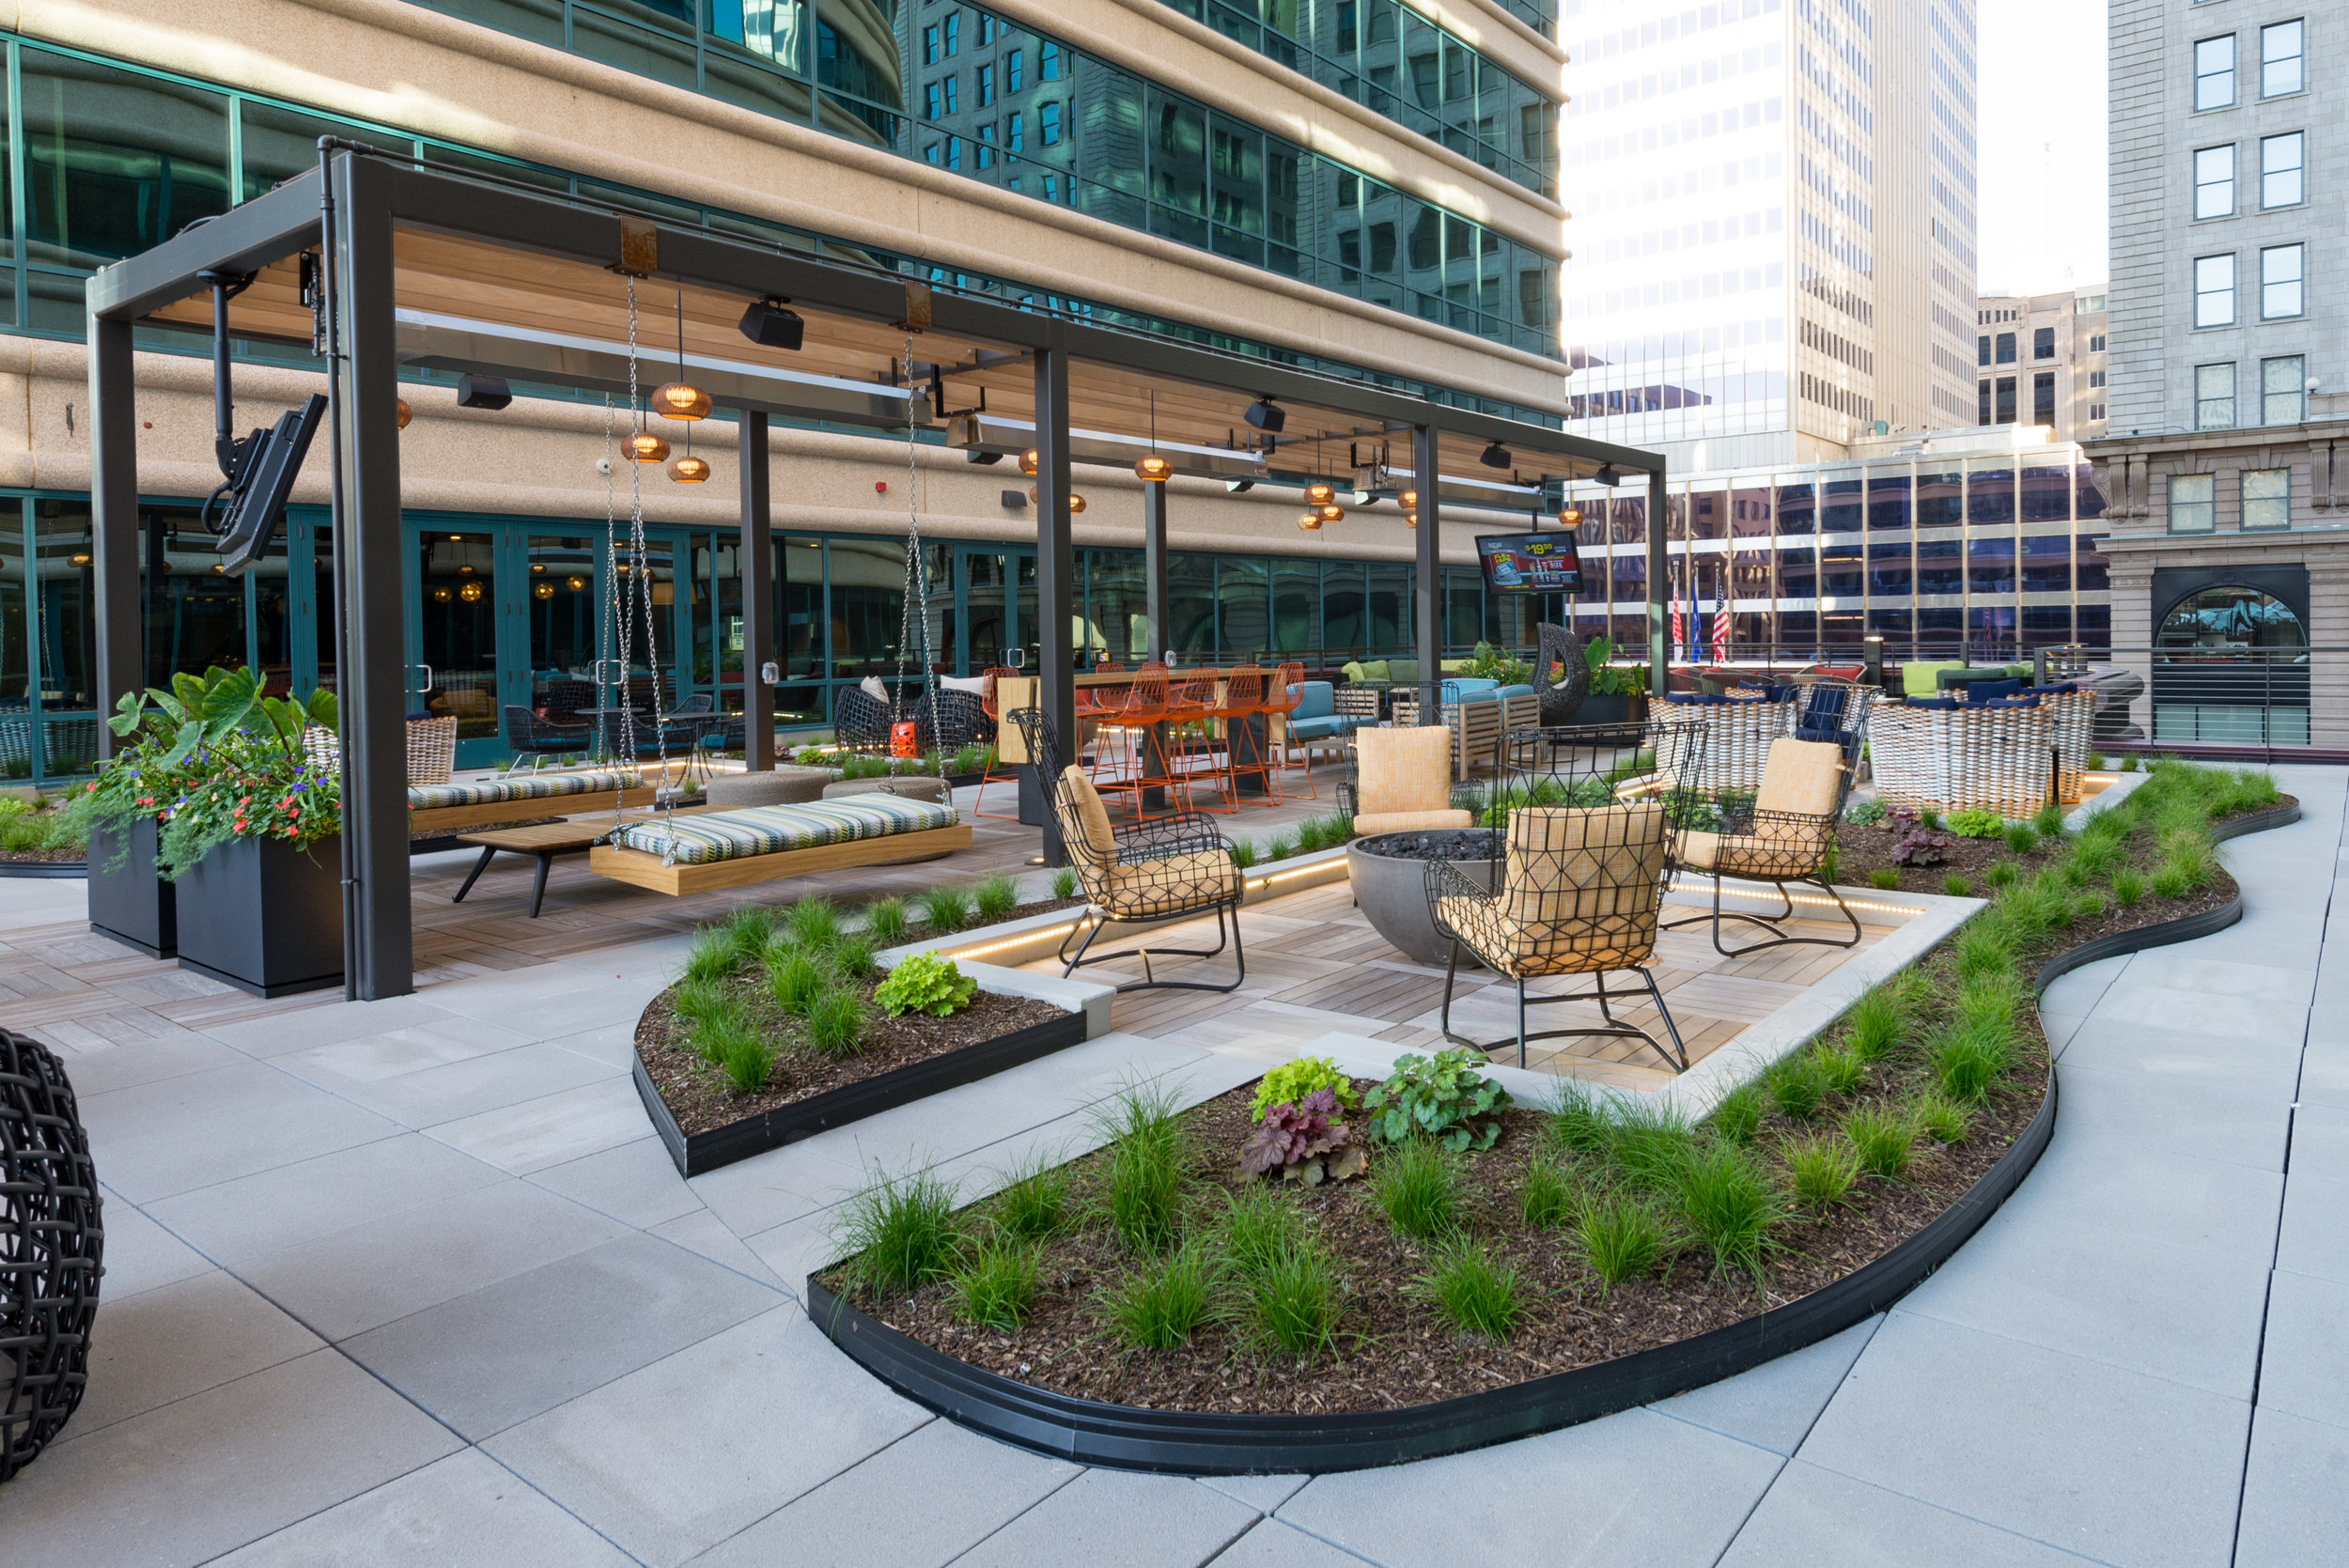 Fifth Street Towers, Minneapolis MN. Downtown work environments require amenity decks that complement hardscape and furnishings with vibrant floral and green interest. Our designers enjoy getting clients involved in the collaborative creative process.